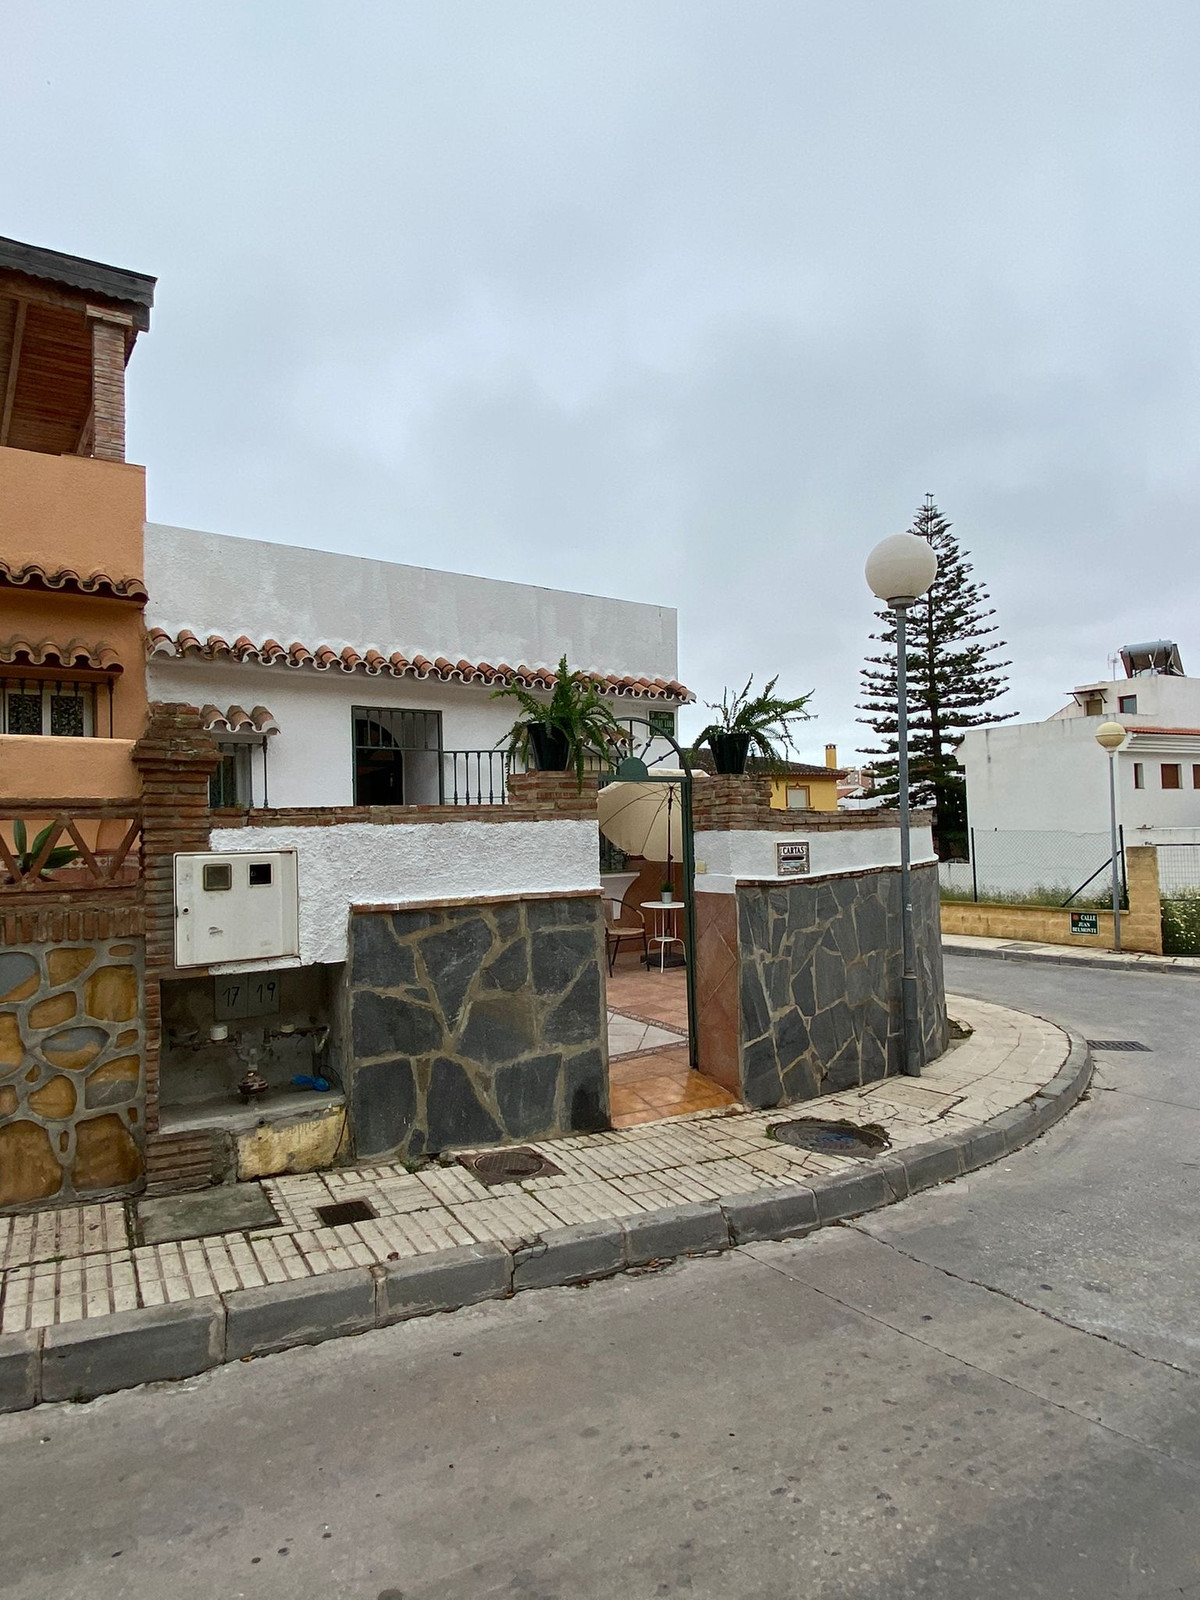 Cozy semi-detached house on the corner in the heart of Los Boliches. Located in Calle Matias Lara La,Spain